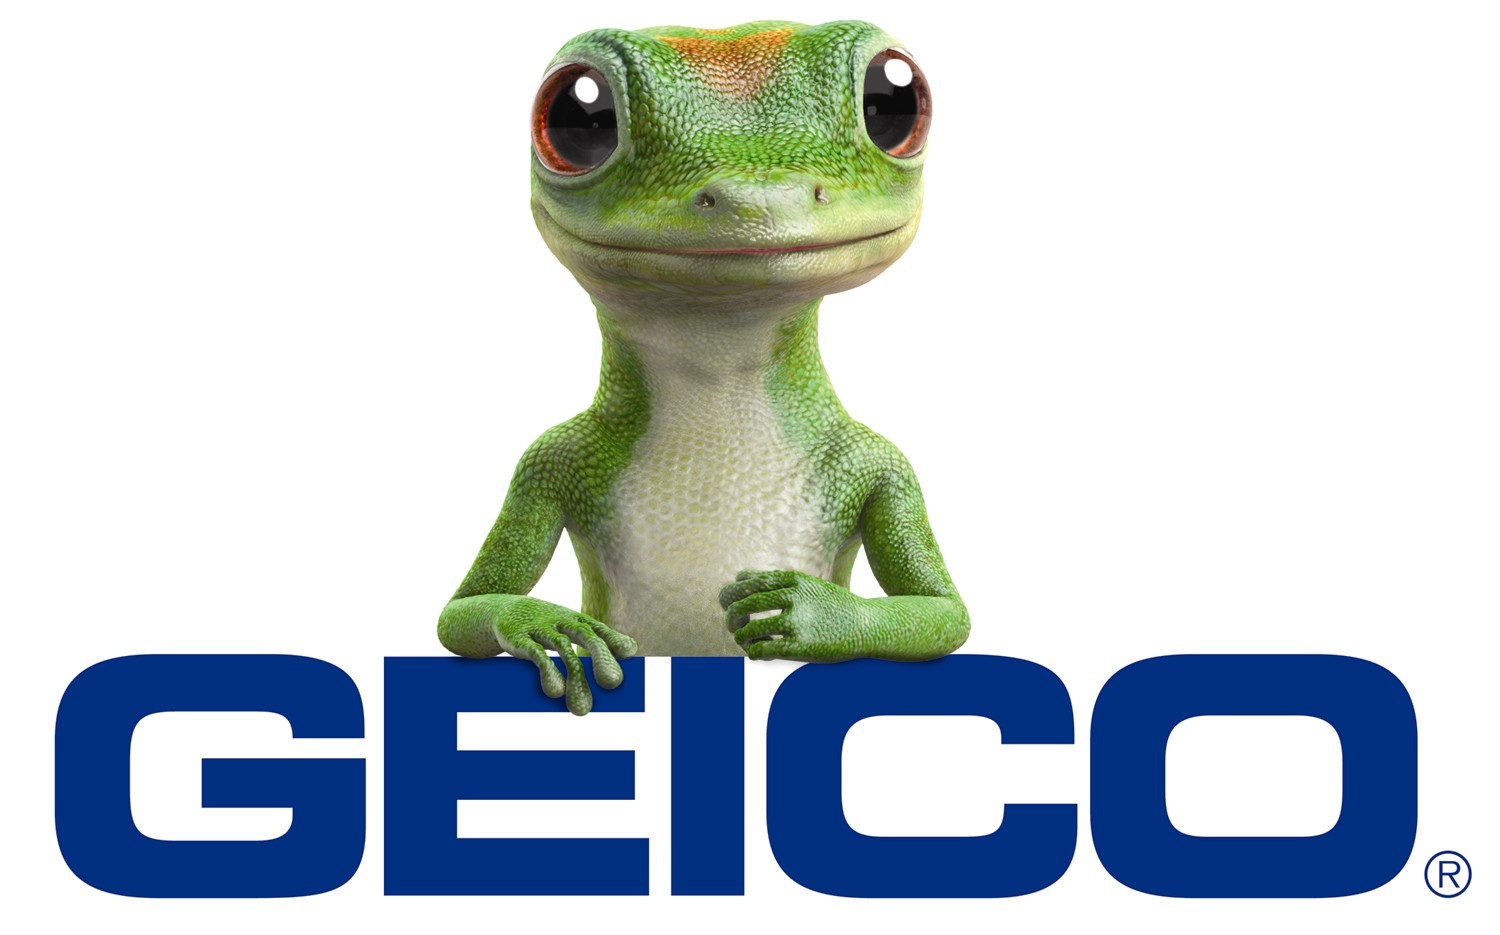 Geico Gecko Drawing at GetDrawings.com.